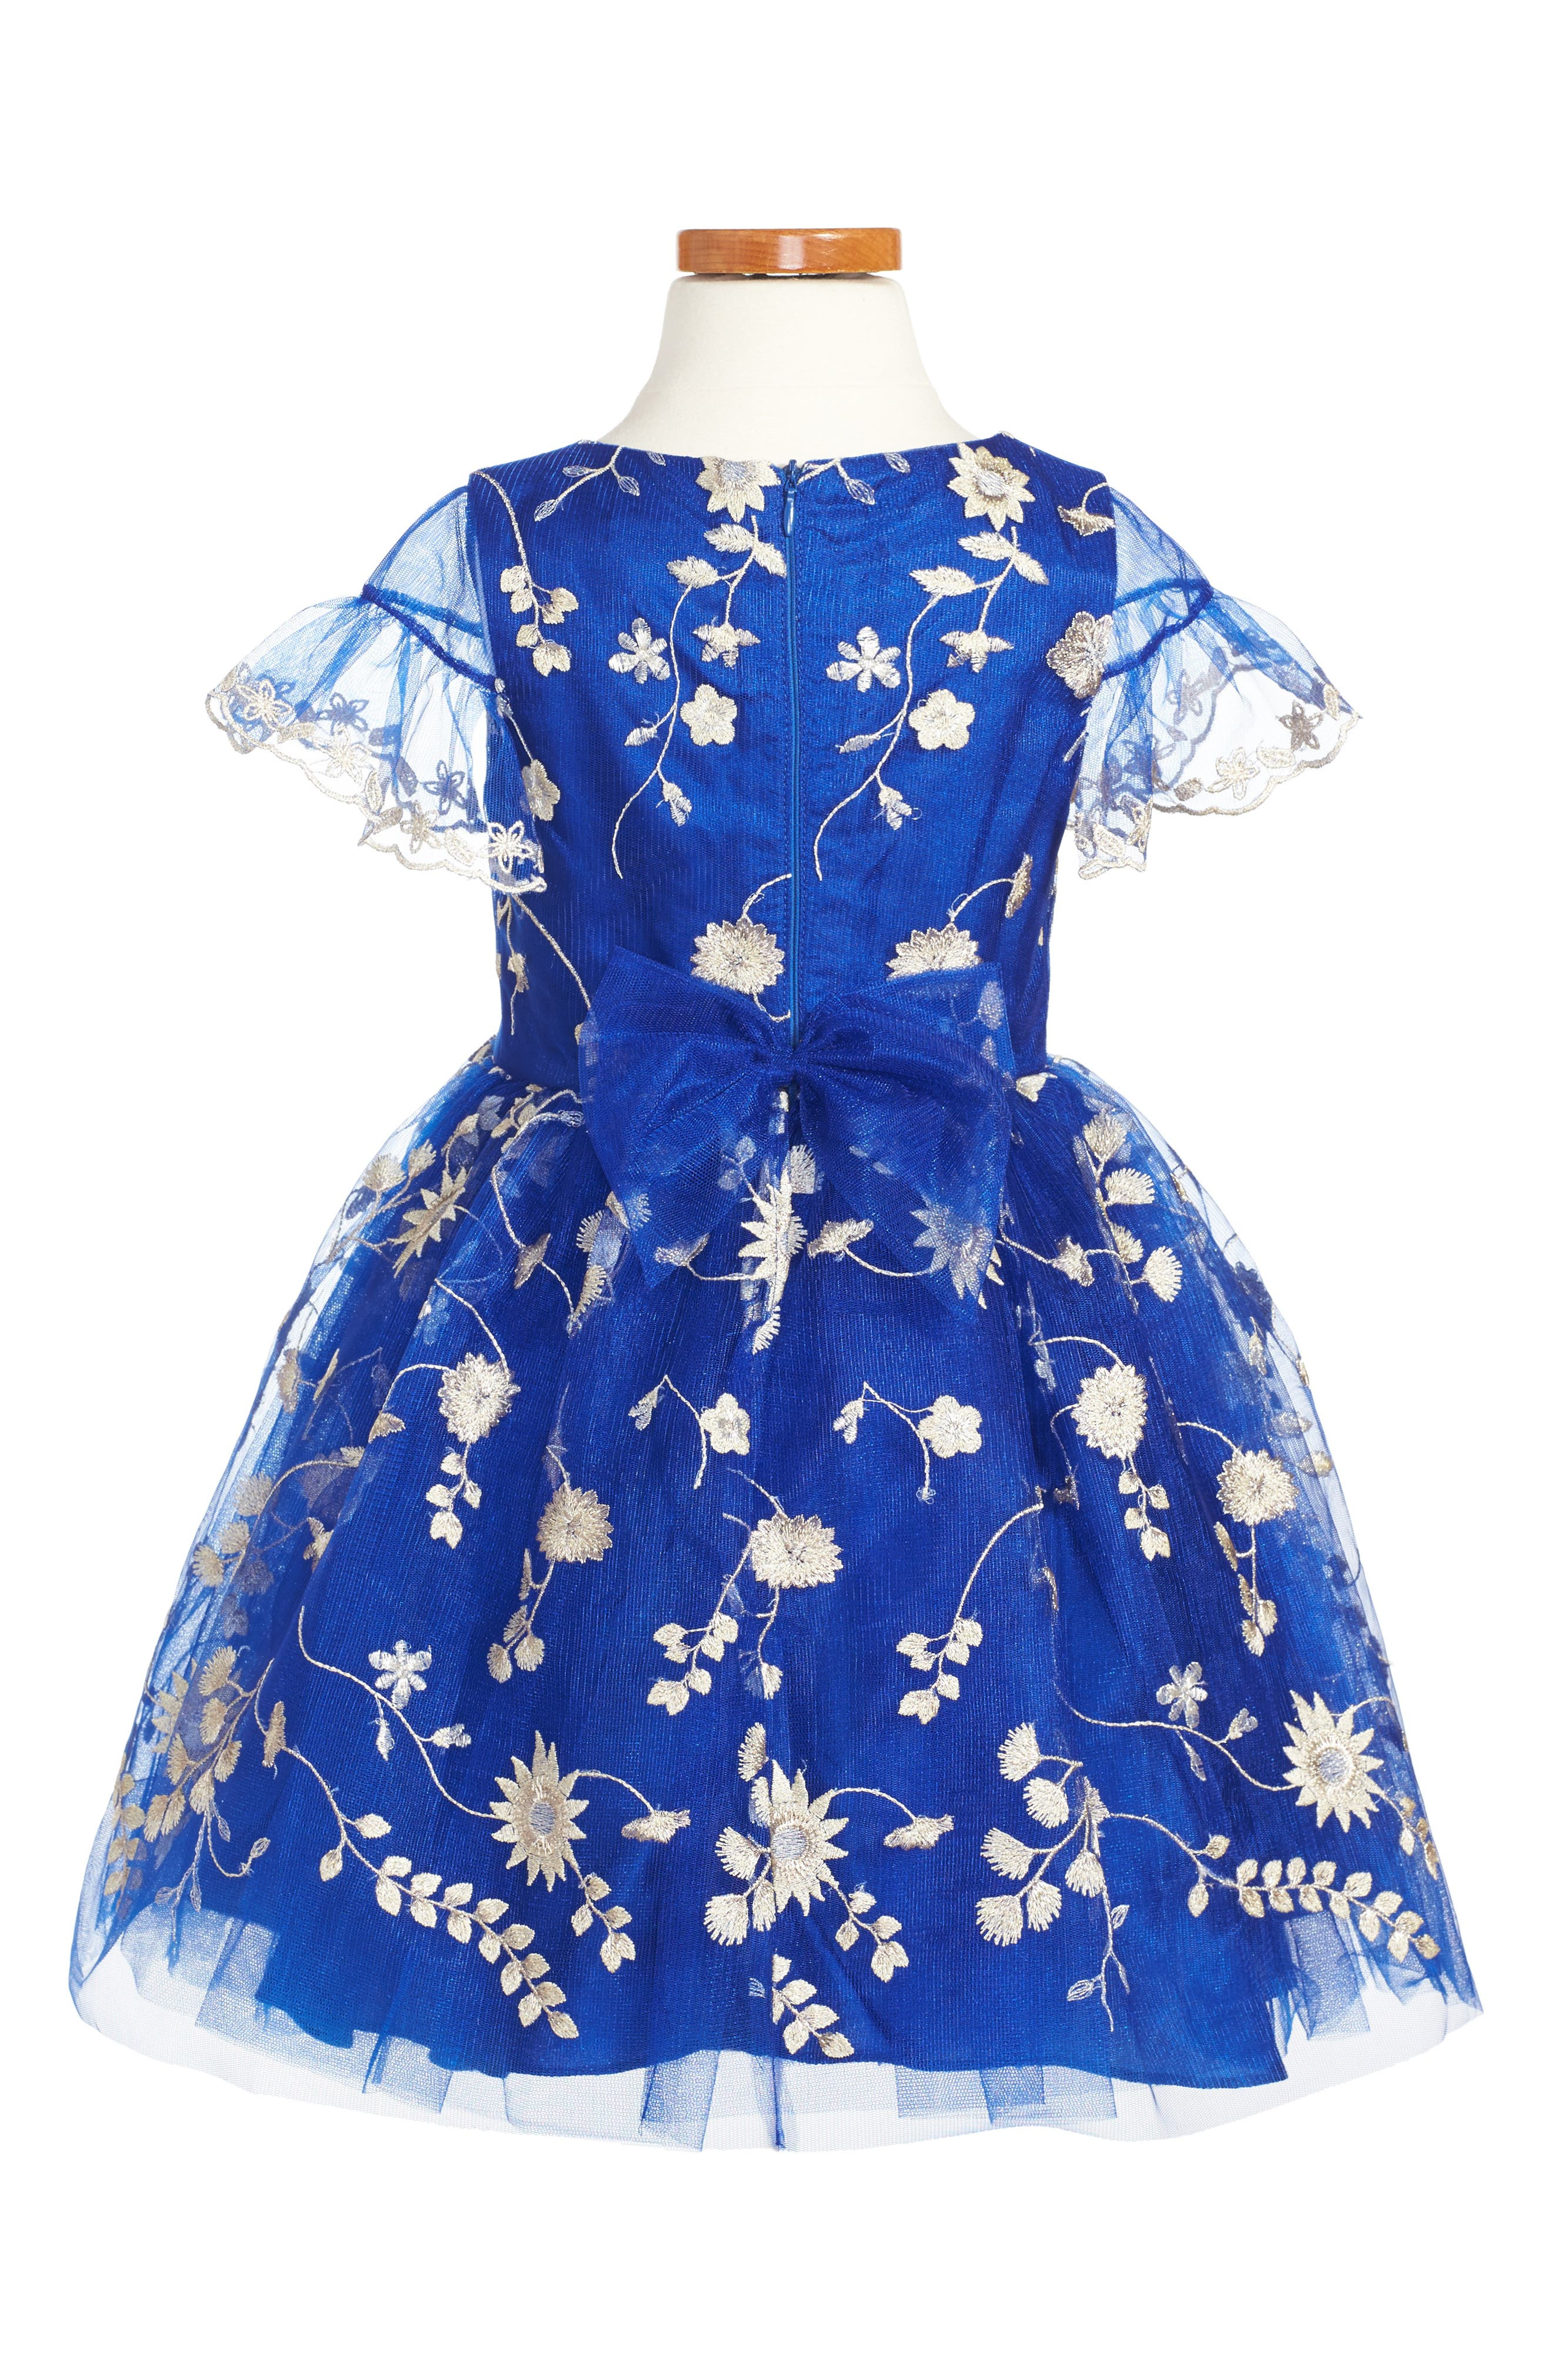 Floral Embroidery Dress,                             Alternate thumbnail 4, color,                             Royal Blue/ Gold